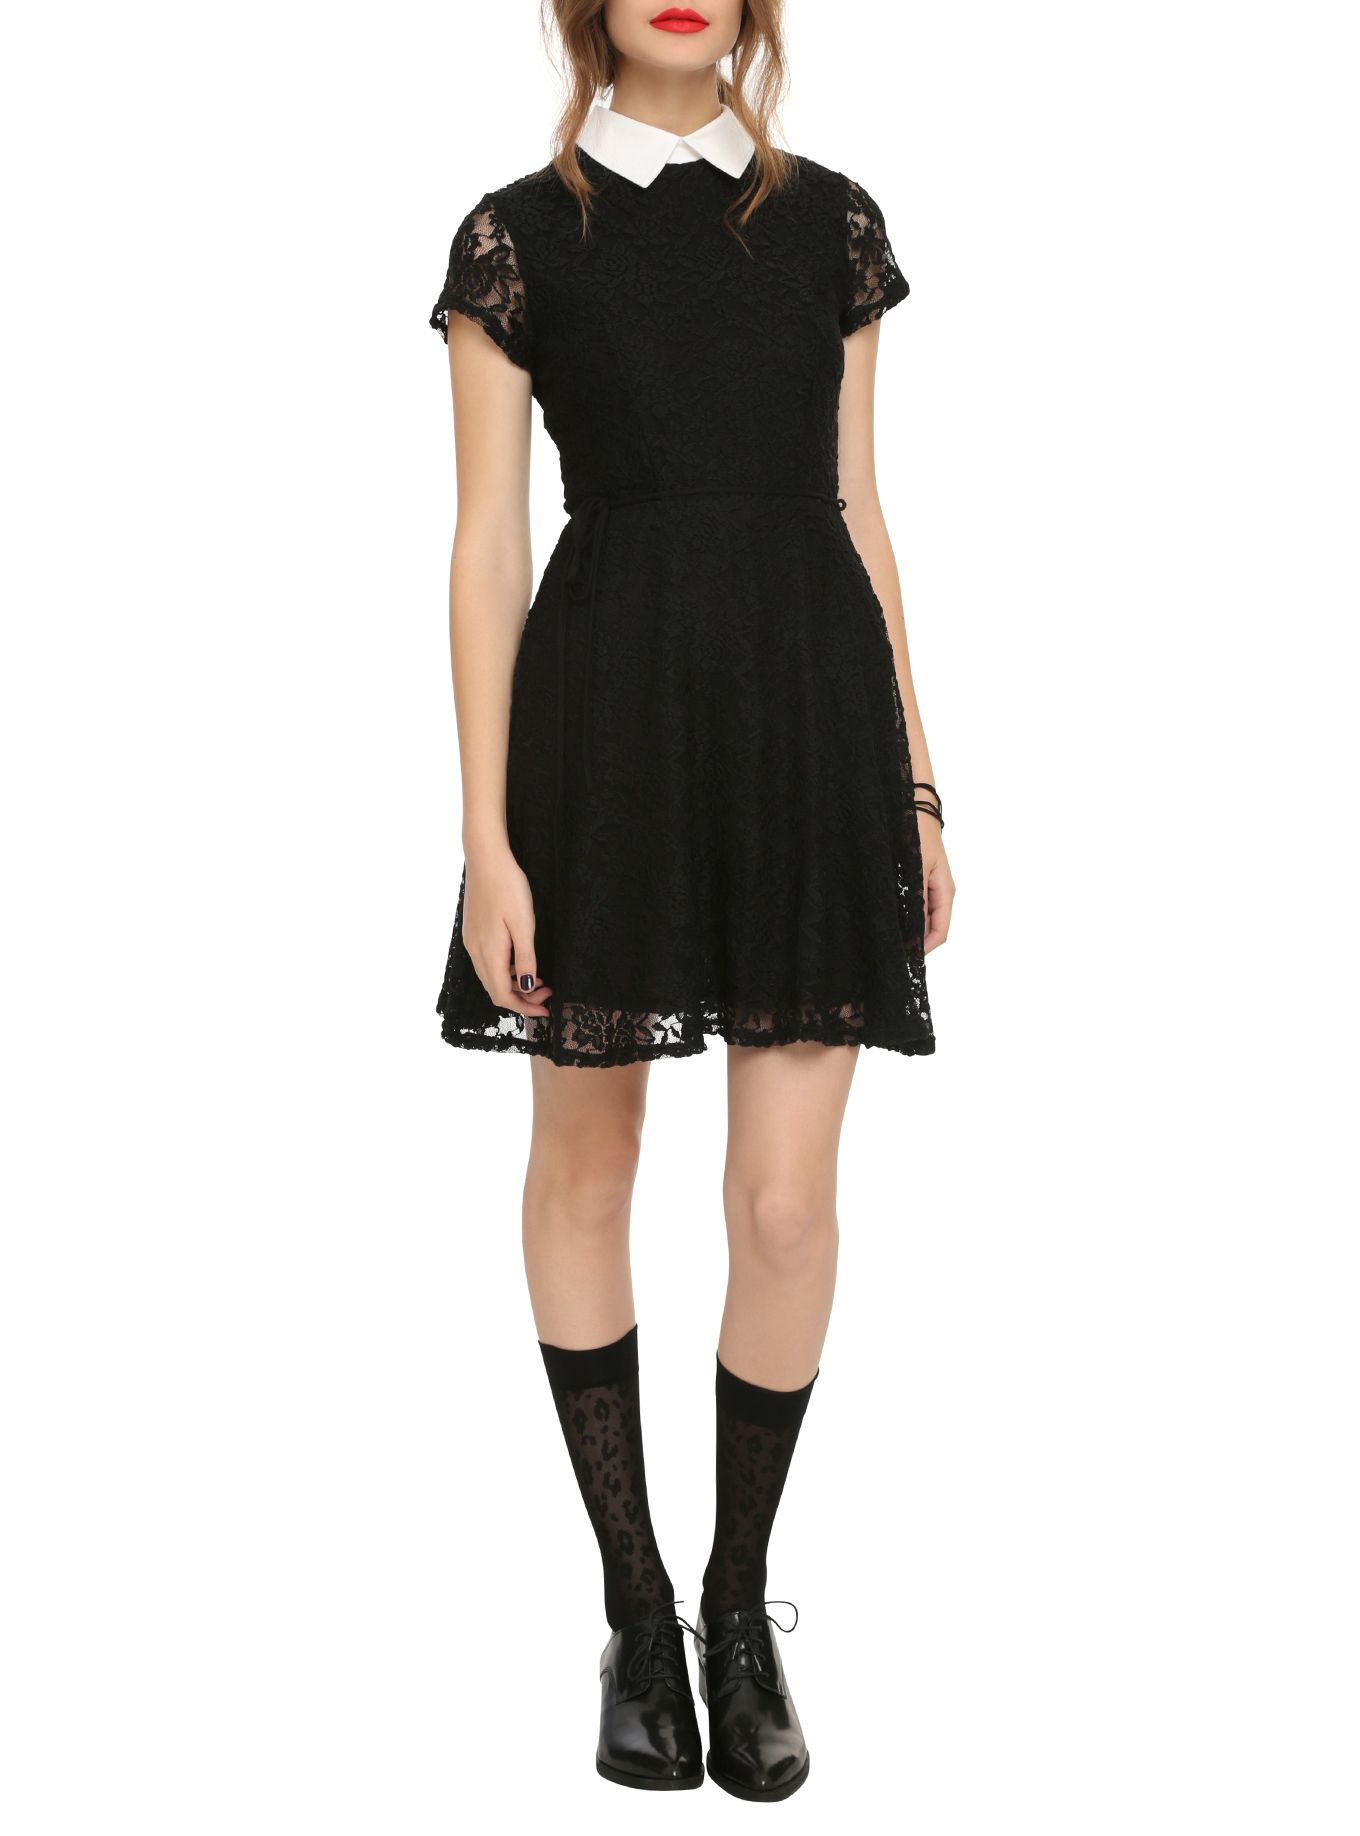 0b0247ba2 Black Lace White Collar Dress | Hot Topic | wish | White collar ...